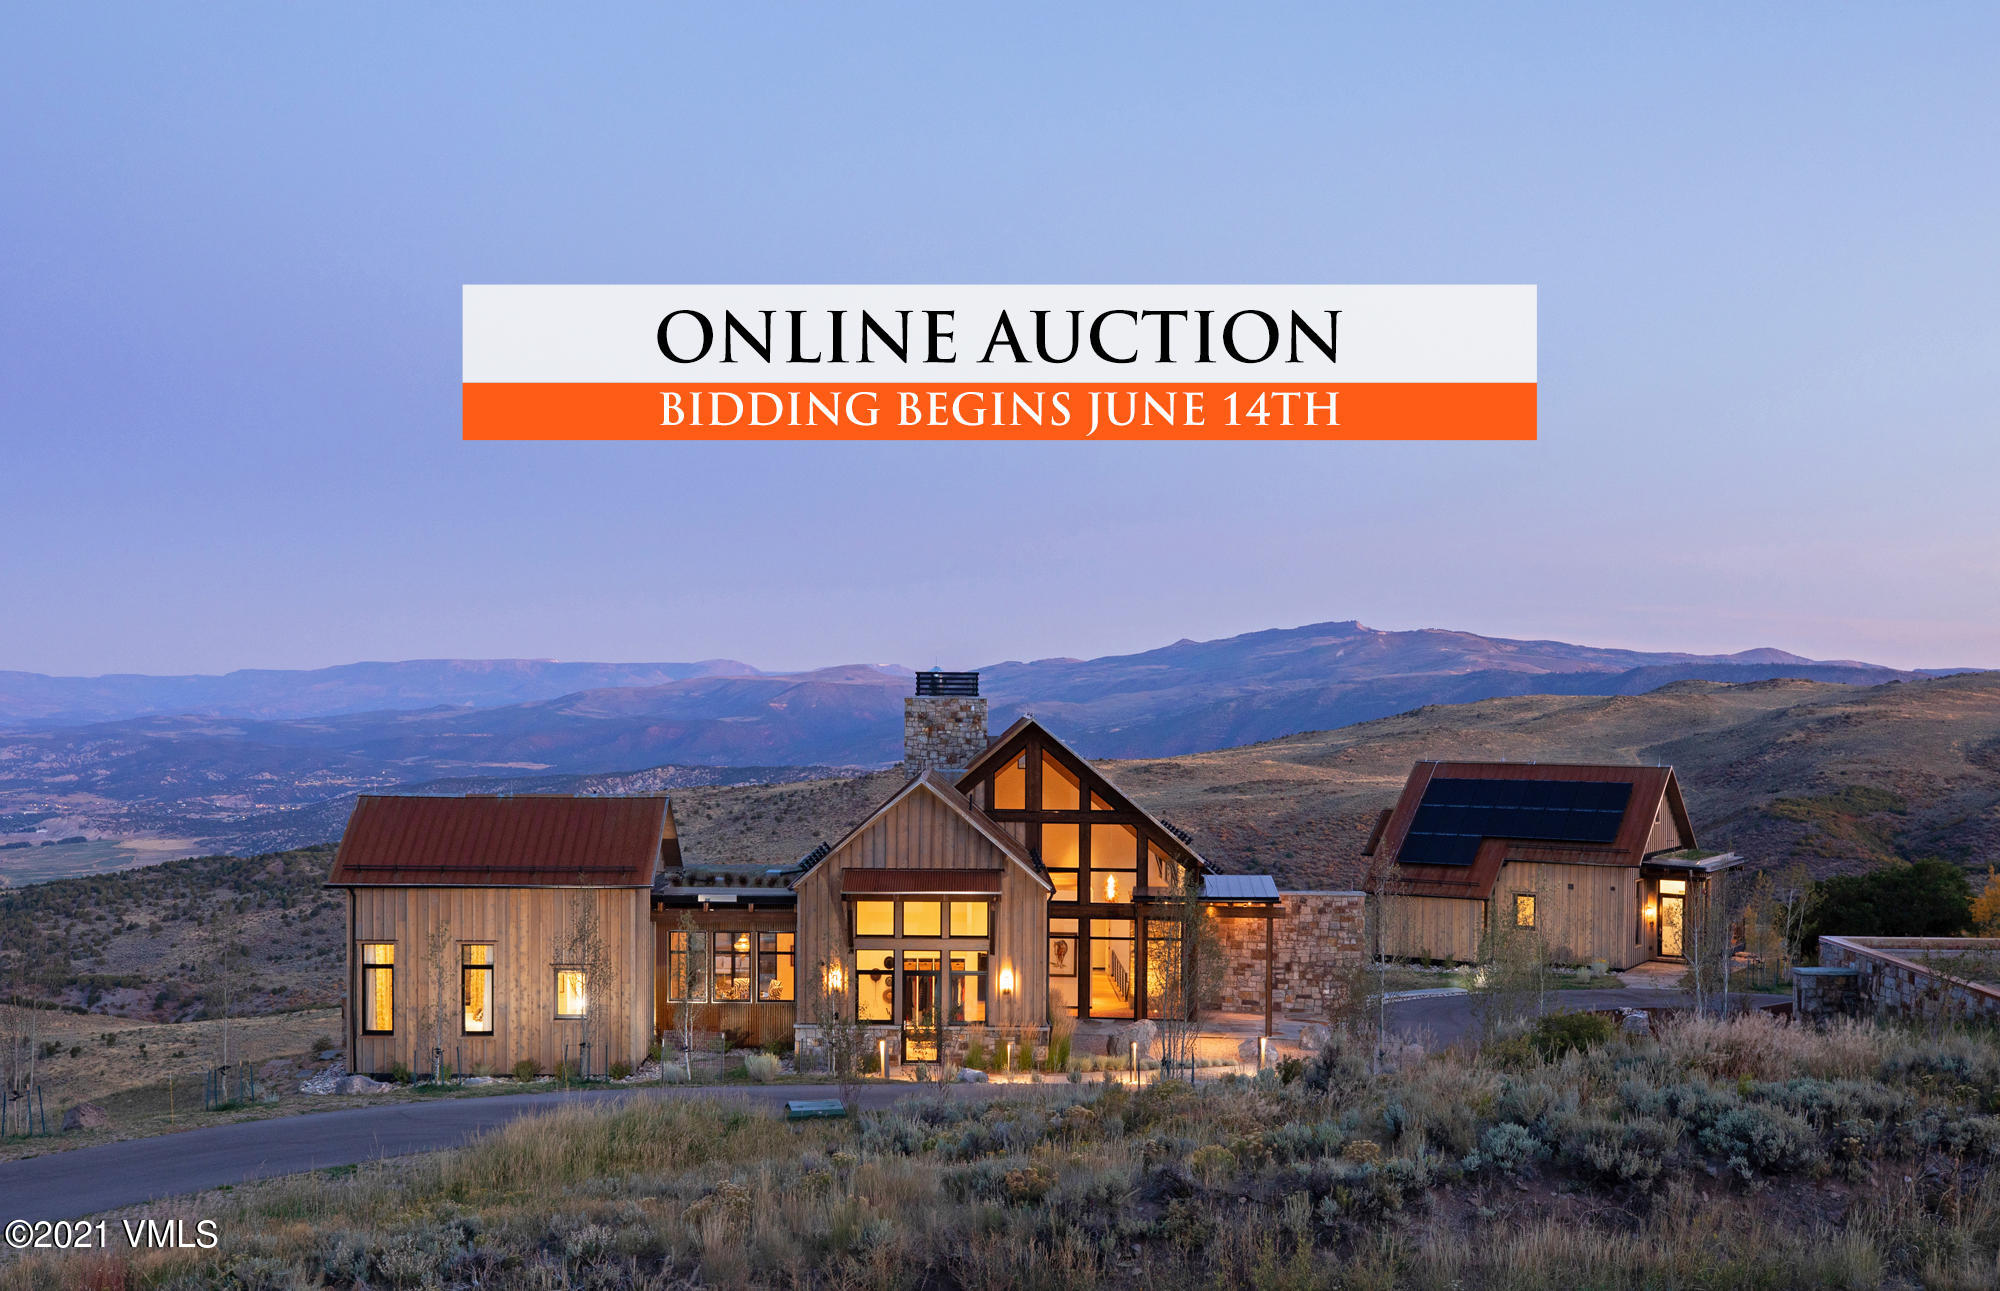 AUCTION - Seller offering property via online auction. Bid online beginning Monday, June 14th. Previously listed at $6,500,000, now selling at auction! Preview period begins Friday, June 11th to view this extraordinary Vail Valley home. Perched above unparalleled mountain vistas, this is truly a modern mountaintop escape in the sky. Completed in January 2019, this estate is nestled on 72.3+/- private acres in the sought-after community of Cordillera, with access to premier amenities and outdoor activities. Built with a European compound-concept design, the property has 3 separate buildings including the 3-bedroom main house, detached 2-bedroom guest house with its own kitchen, laundry, and deck and a 3-bay heated garage. The incredible views from each of the 5-bedrooms will only begin to give you a taste of mountain living at its finest. Indoor and outdoor living spaces are effortlessly integrated through the Zola Lift Slide doors that provide uninterrupted access to breathtaking expanses. Enjoy the mountain air from the 1,000+/- sq. ft. heated patio that leads into the state-of-the-art kitchen and multiple spacious living areas. This stylish modern masterpiece has unique features throughout including innovative finishes, custom cabinetry, vaulted ceilings, exaggerated wood floors, custom mosaics and astute attention to detail. Living is incomparable at this home with a luxurious library, entertainment room, first floor spacious master bedroom and never ending luxury amenities. Likewise, the desirable Cordillera community provides a lifestyle filled with topnotch activities, including three world-class golf courses, fly fishing, equestrian center, swimming, tennis and much more. Although private and secluded, the property is15 minutes away from Riverwalk's marvelous shopping and entertainment, while Vail, Beaver Creek, and Vail Airport are all 30-40 minutes away. This ideal location allows easy access to nationally acclaimed skiing and every amenity imaginable